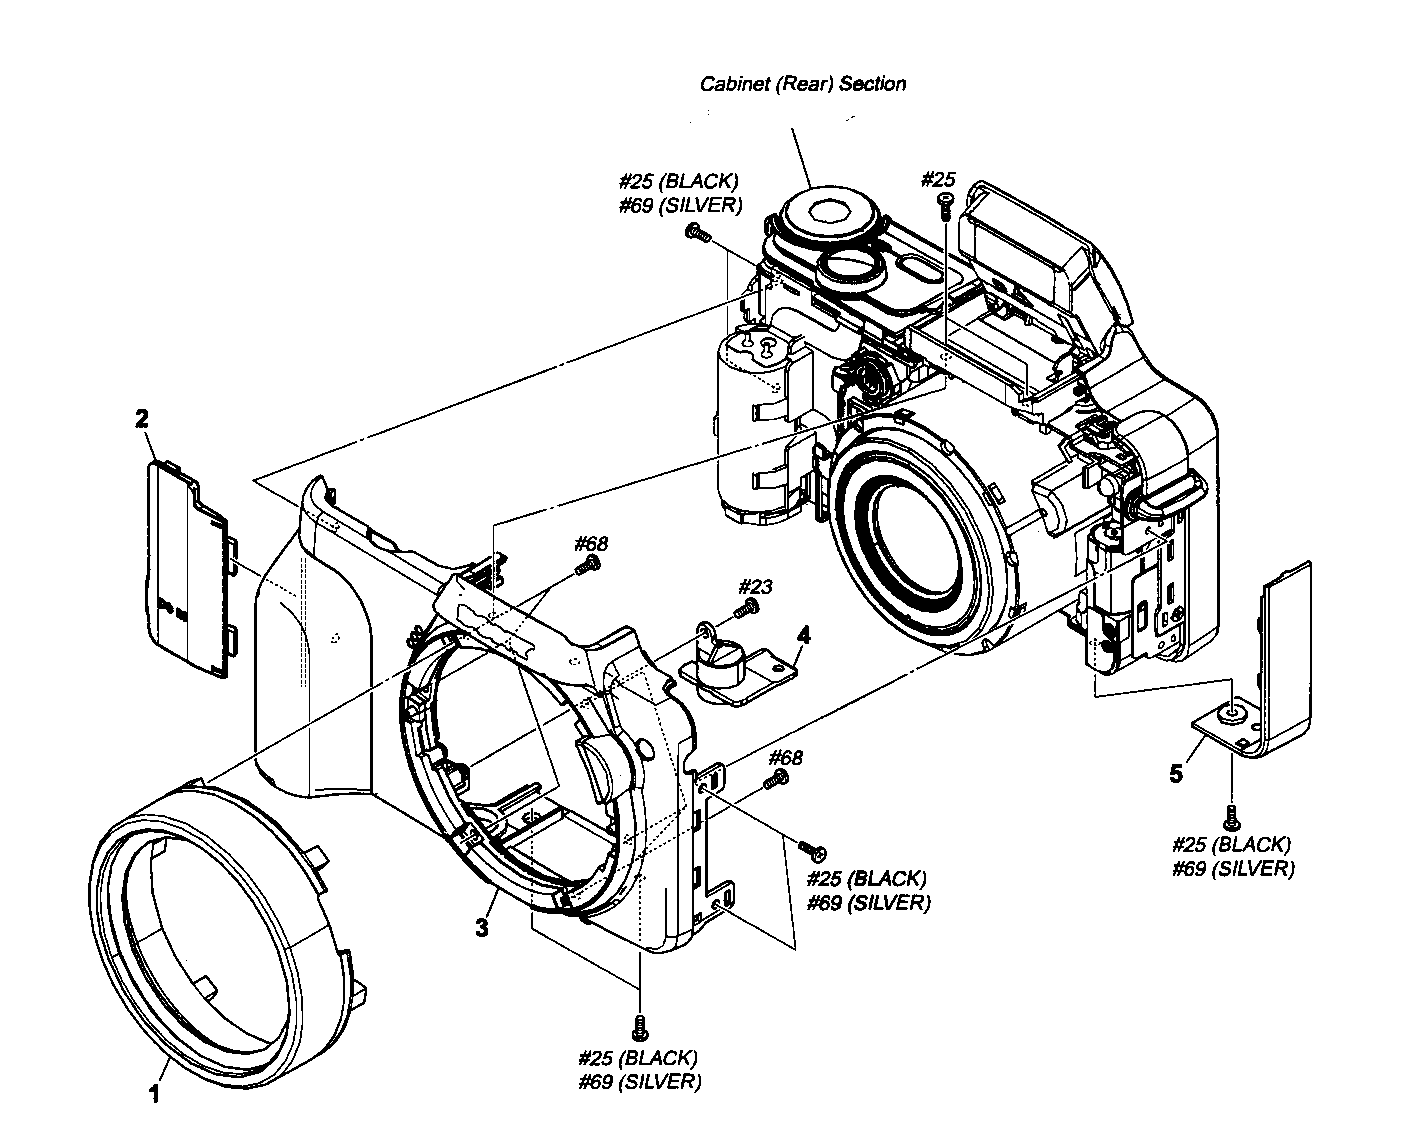 Digital Camera Parts Diagram : 28 Wiring Diagram Images